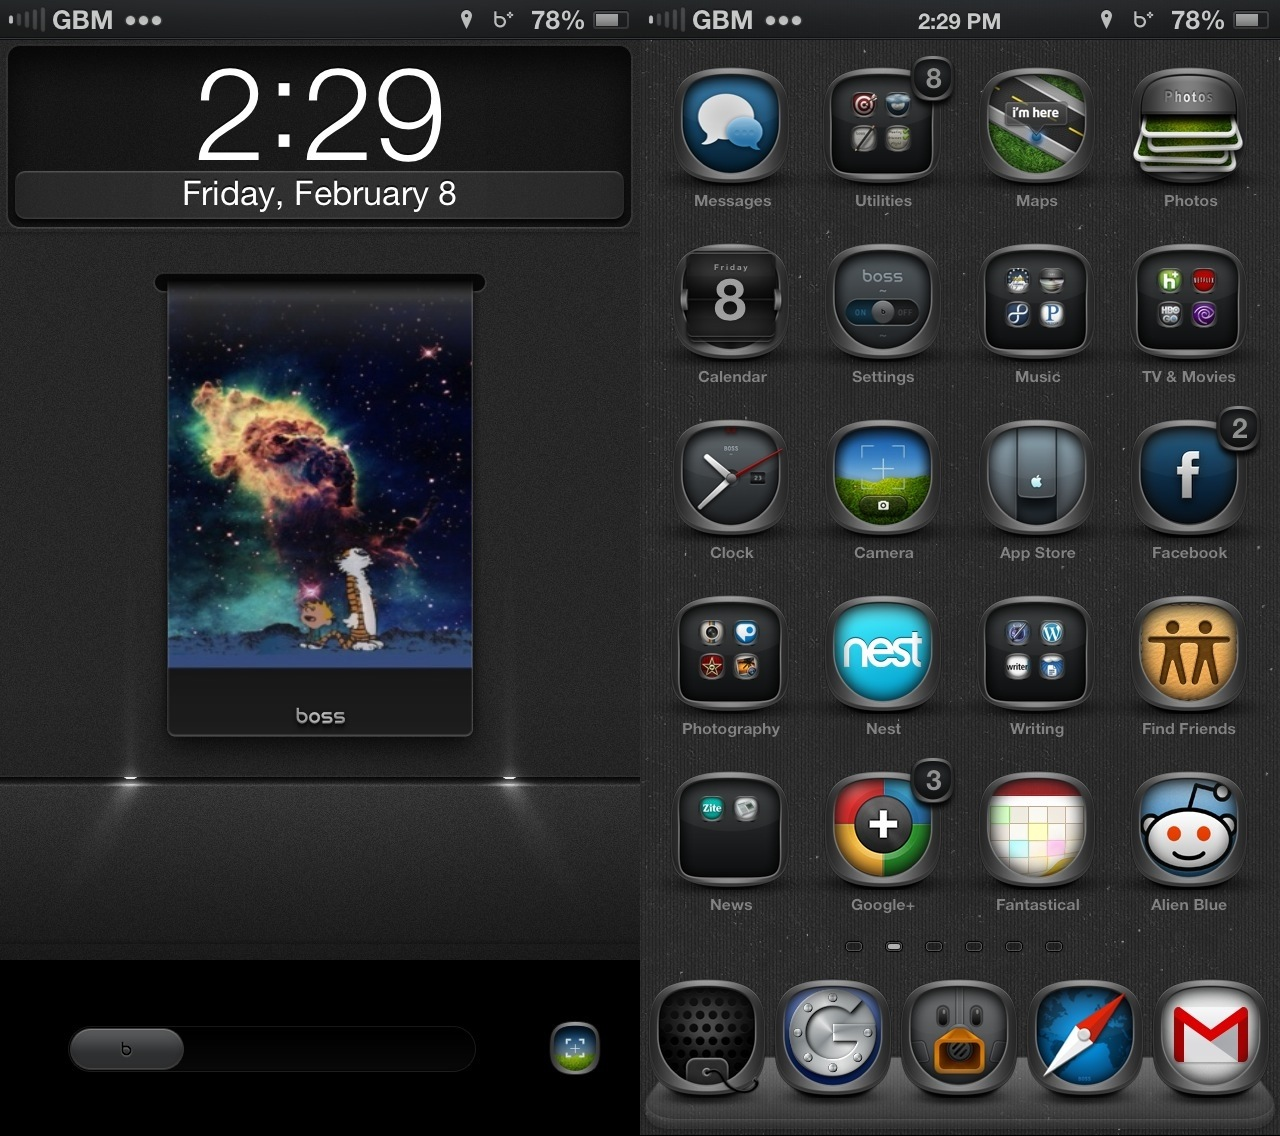 Best Cydia Themes: iOS 6 WinterBoard Themes for the iPhone